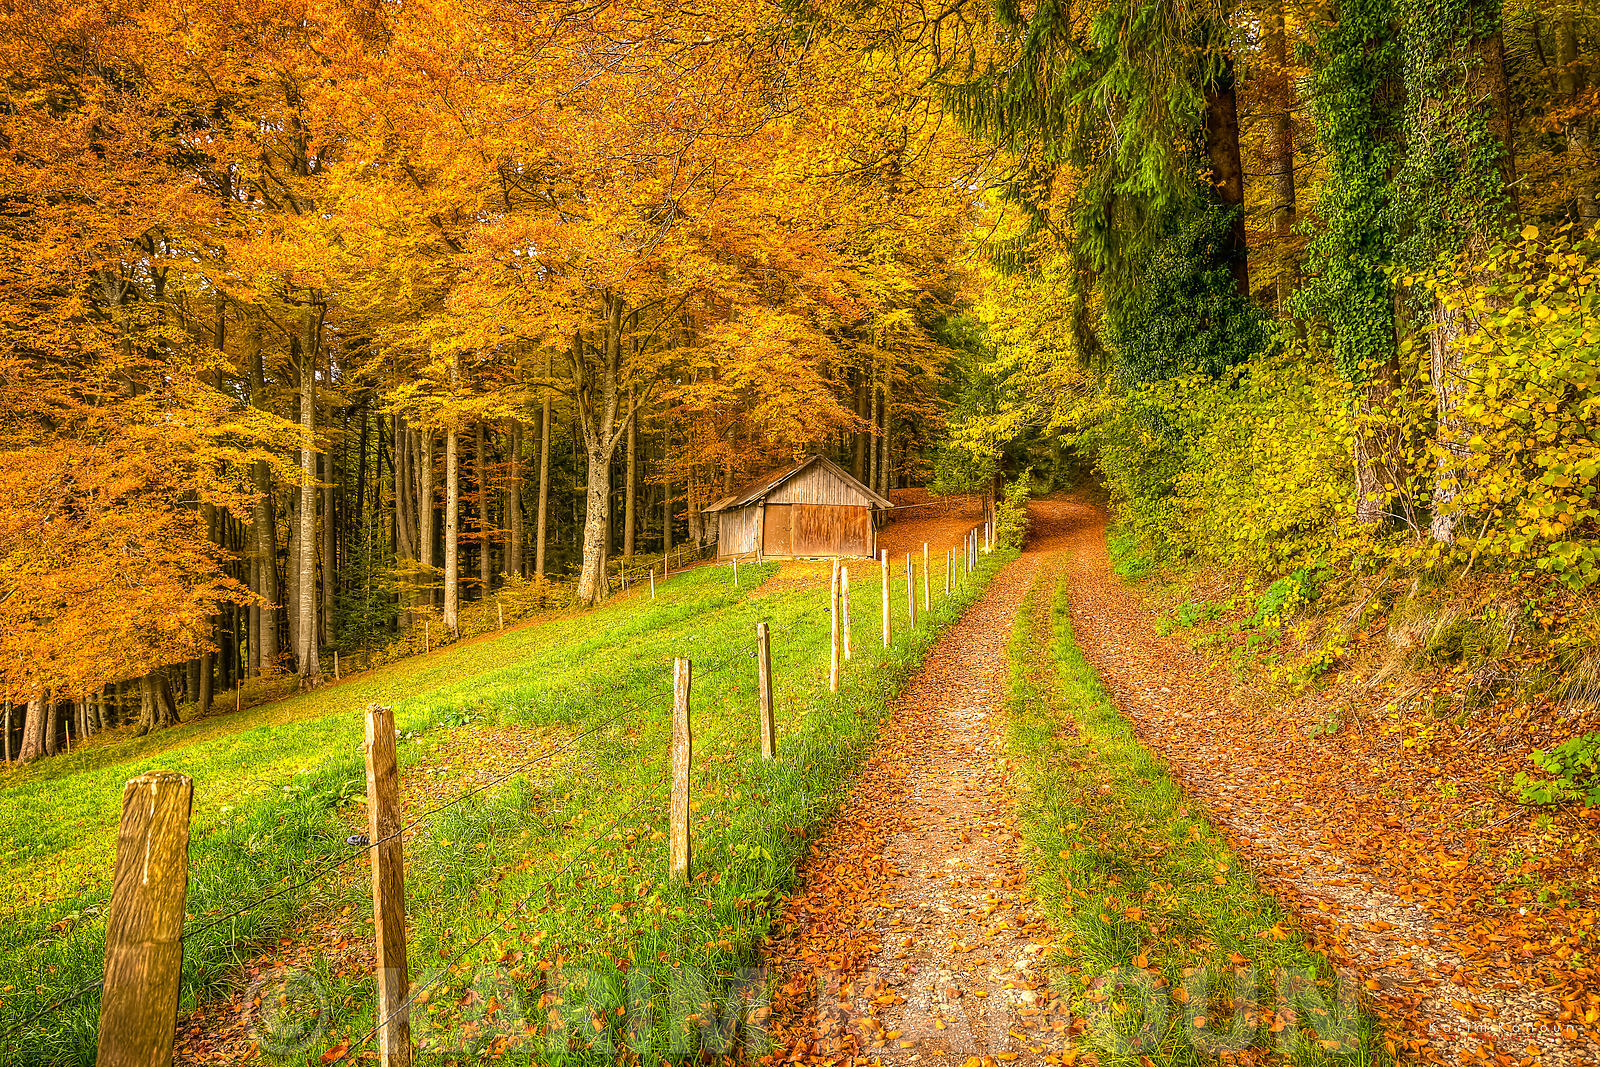 Autumn path to abandoned hut